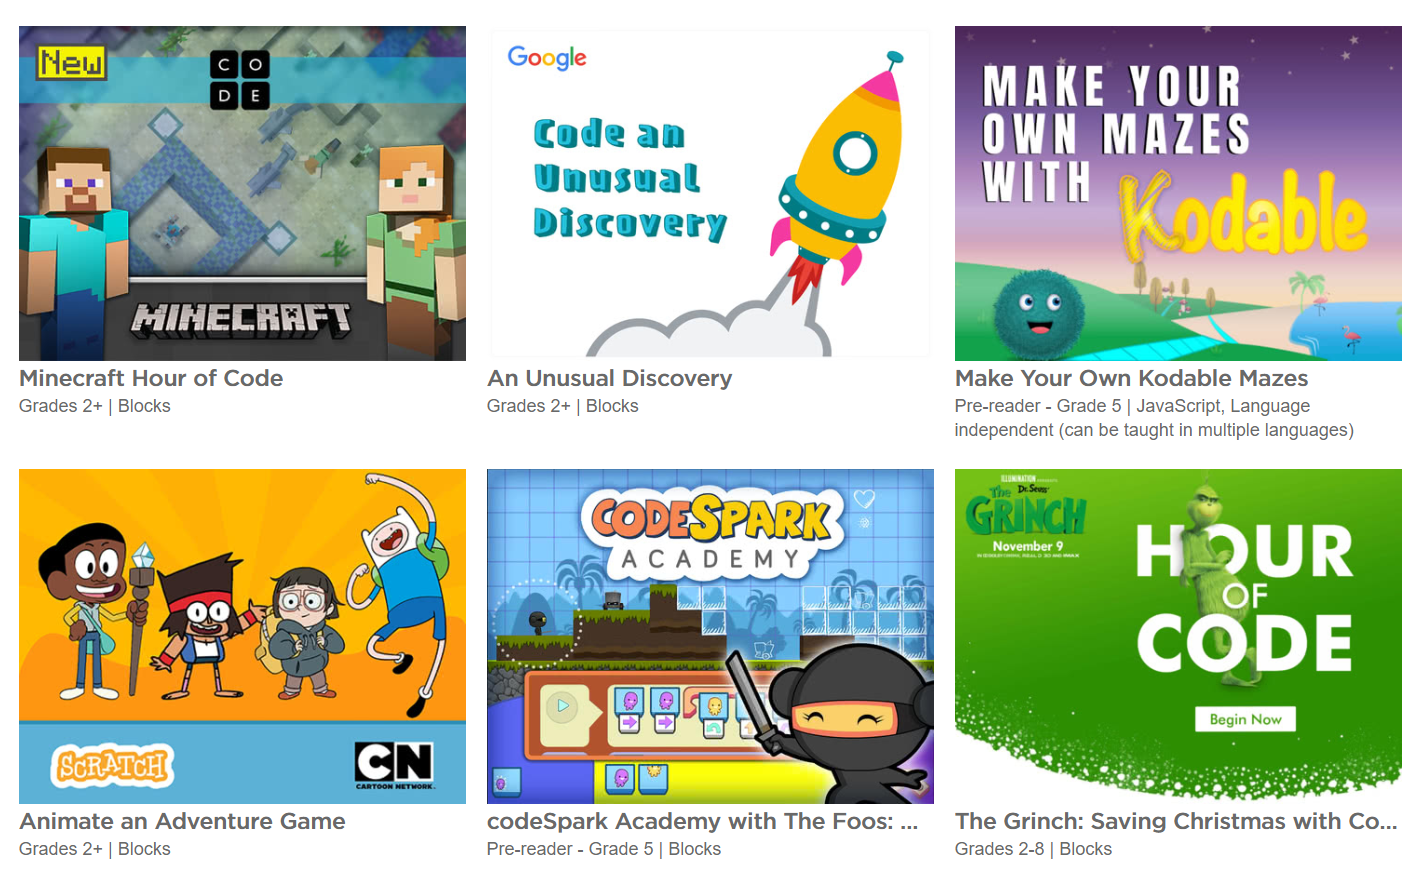 140 new Hour of Code tutorials including a new Minecraft